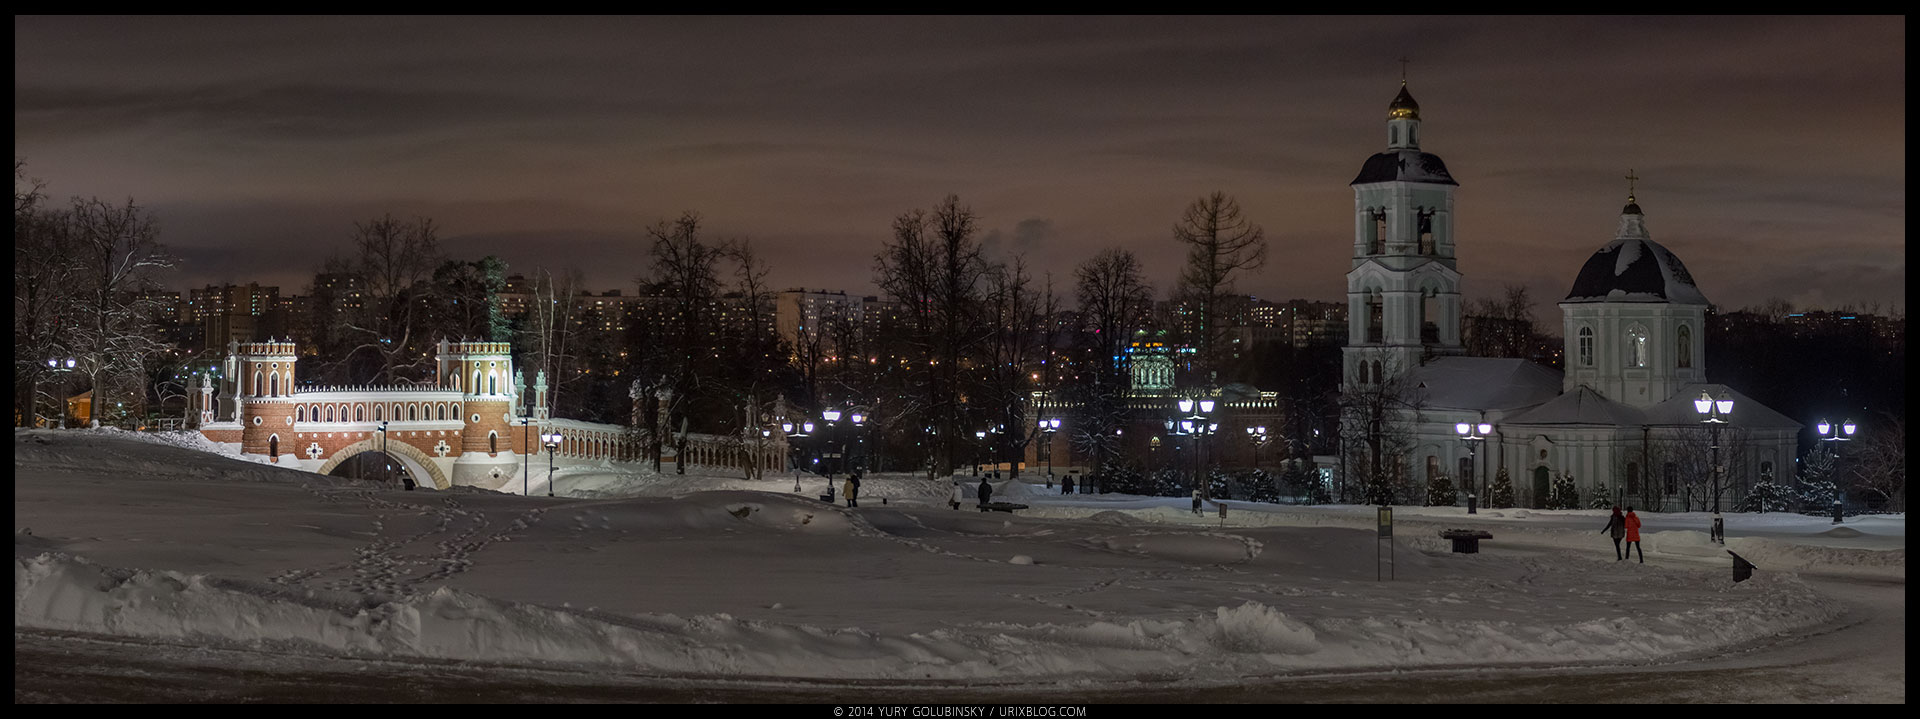 night, Tsaritsyno, palace, architecture, Moscow, Russia, winter, January, panorama, 2015